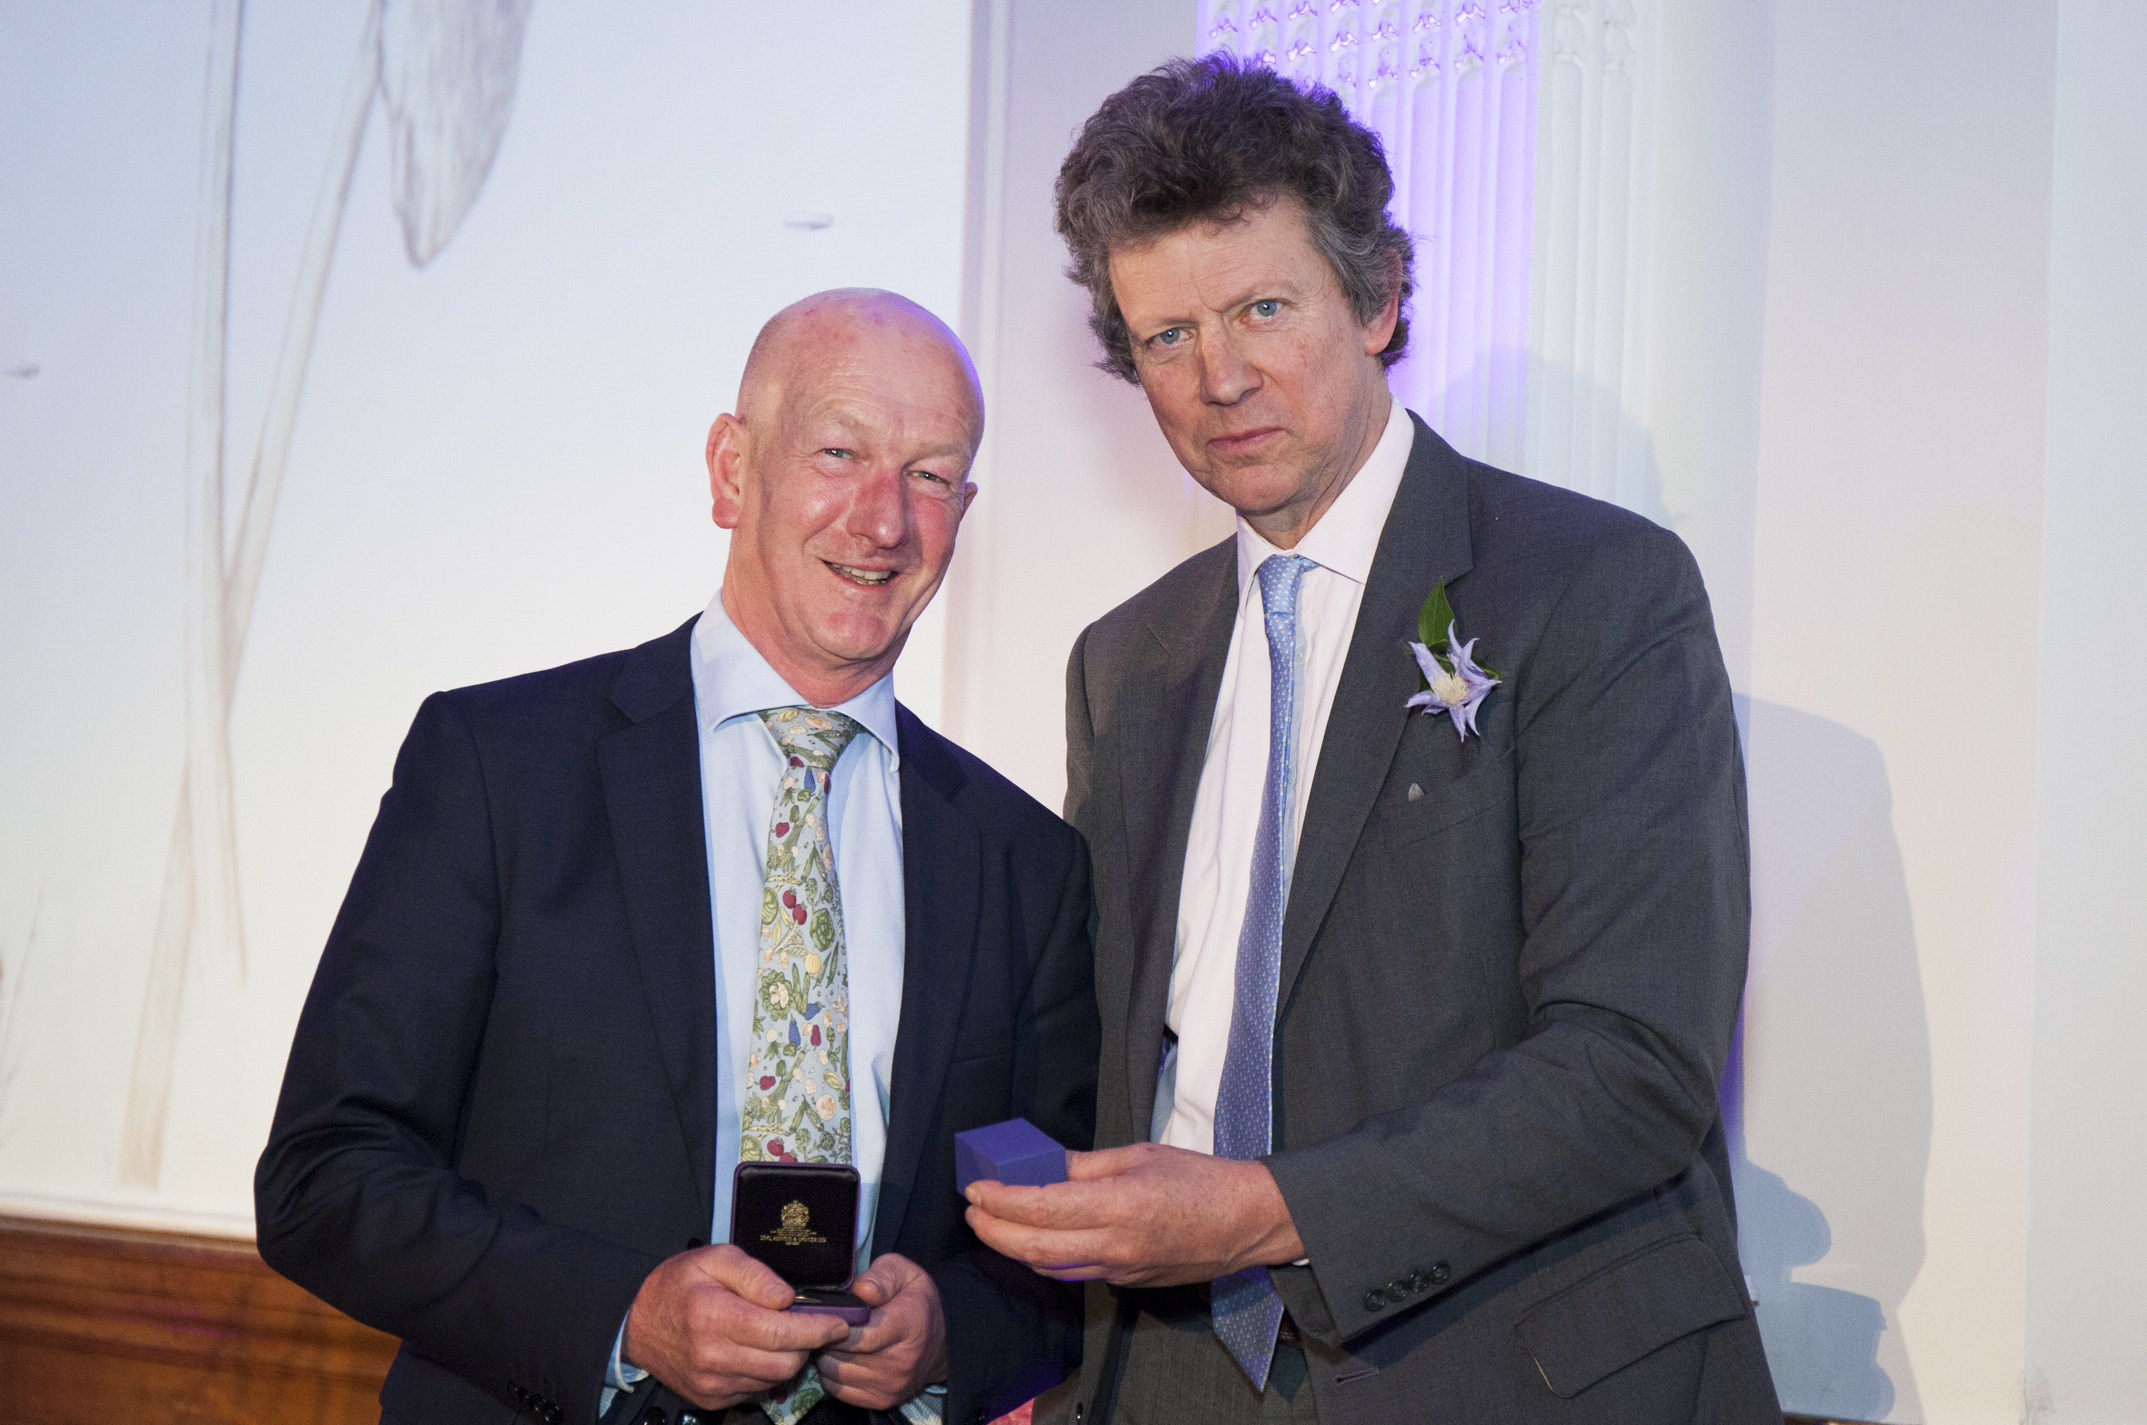 Andrew McIndoe receives the Veitch Memorial Medal from Sir Nicholas Bacon, President of the RHS.jpeg